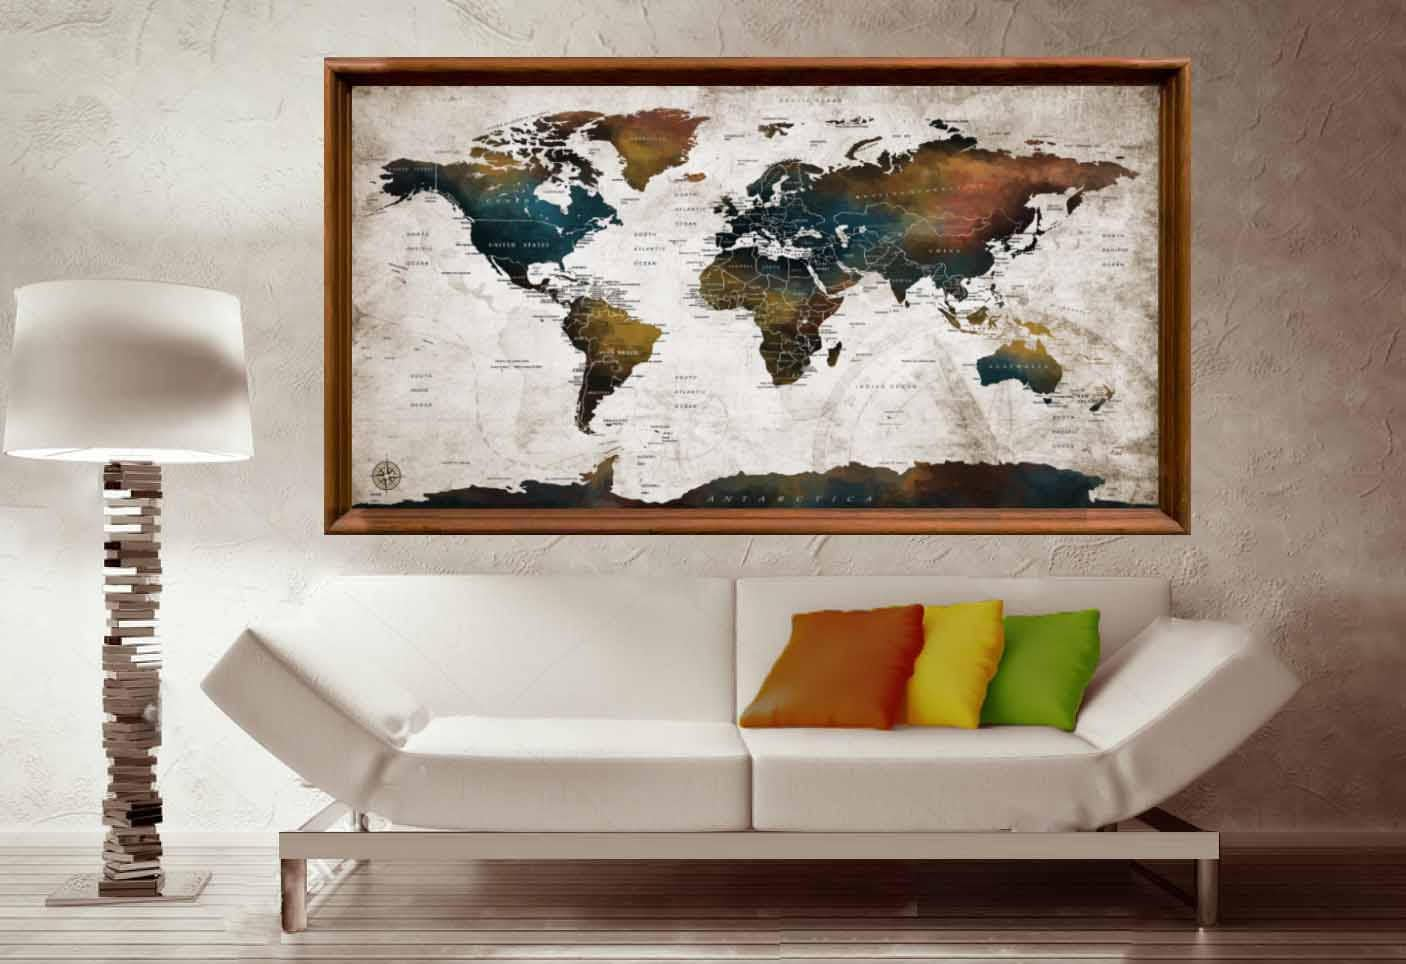 World map detailed countries posterworld map posterworld map wall world map detailed countries posterworld map posterworld map wall artworld map decaldetailed mapworld map push pinpush pin maptravel publicscrutiny Image collections